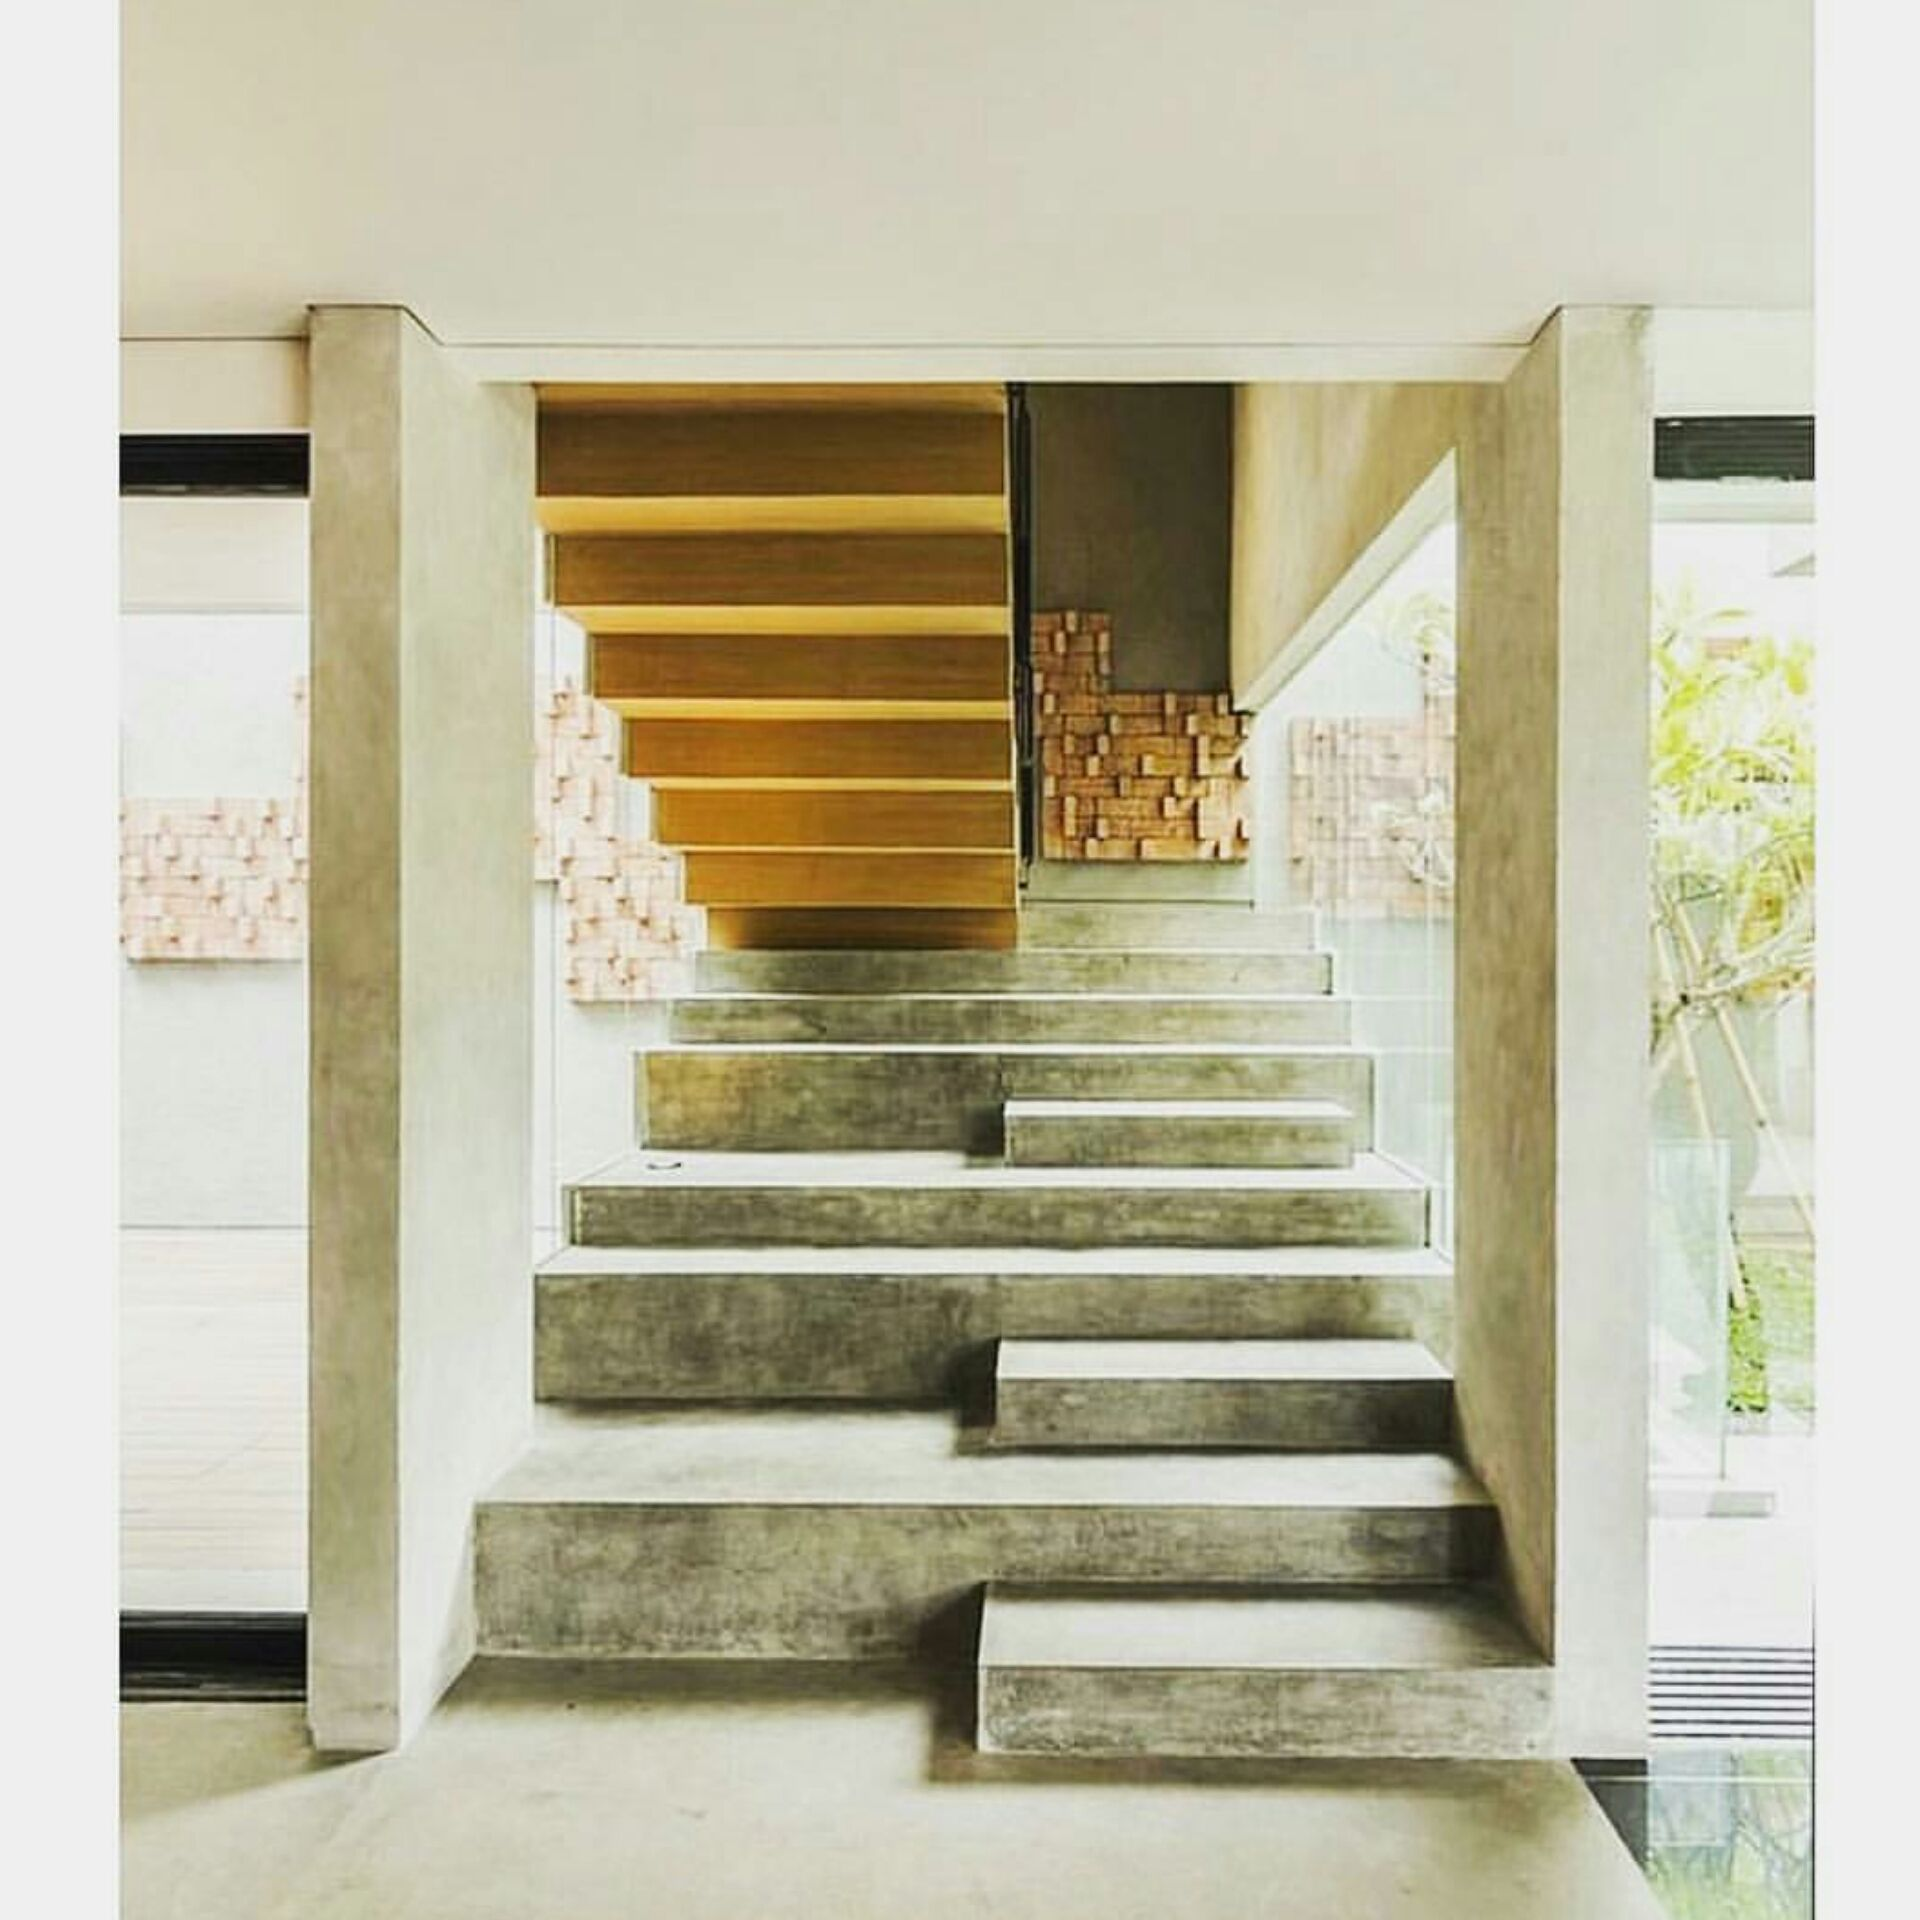 Carlo Scarpa. #dailyinspiration #architecture #concrete